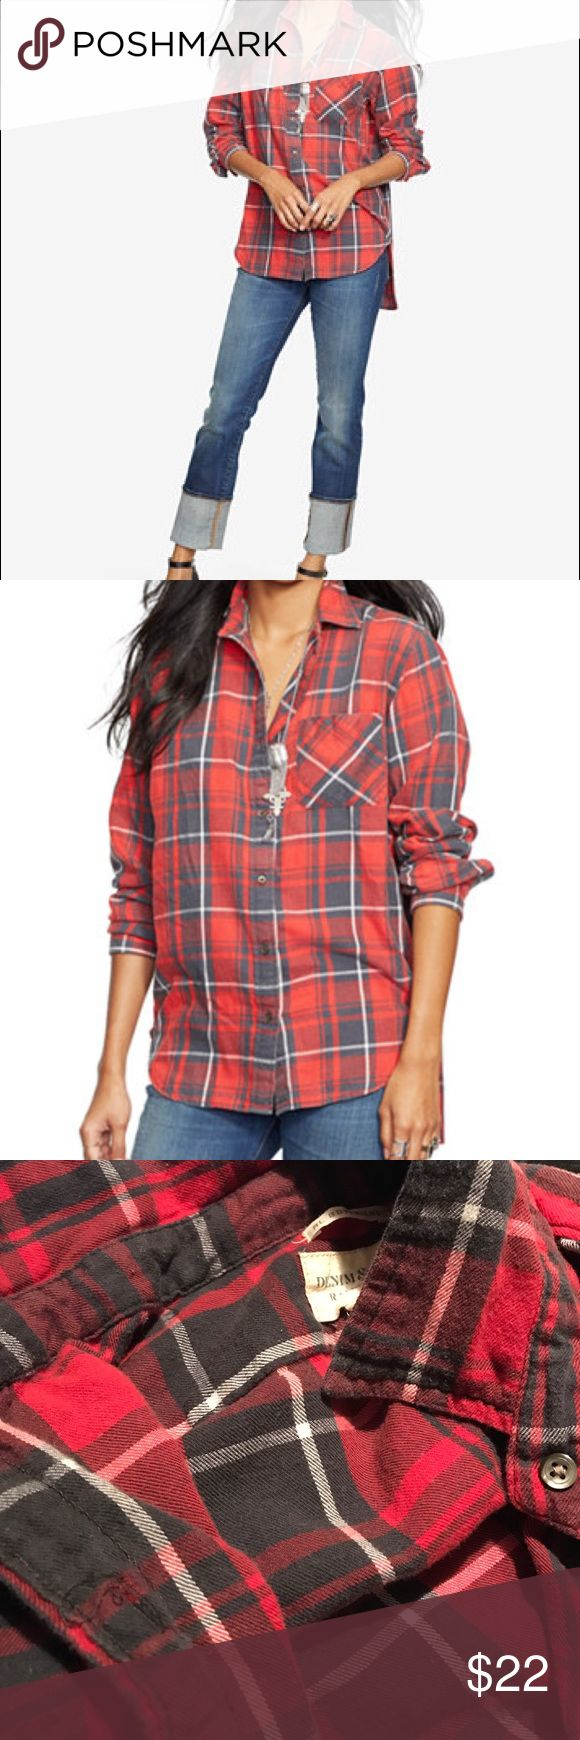 Denim Supply Ralph Lauren Boyfriend Shirt Oversized! I am a Medium and this xs fits normal. I have worn a couple times but in good condition. So comfy. This plaid shirt doesn't look cheap like other shirts like this do. The feel and how it wears with the lightly faded look, makes it look much more put together and you can tell the quality in it. Denim & Supply Ralph Lauren Tops Button Down Shirts